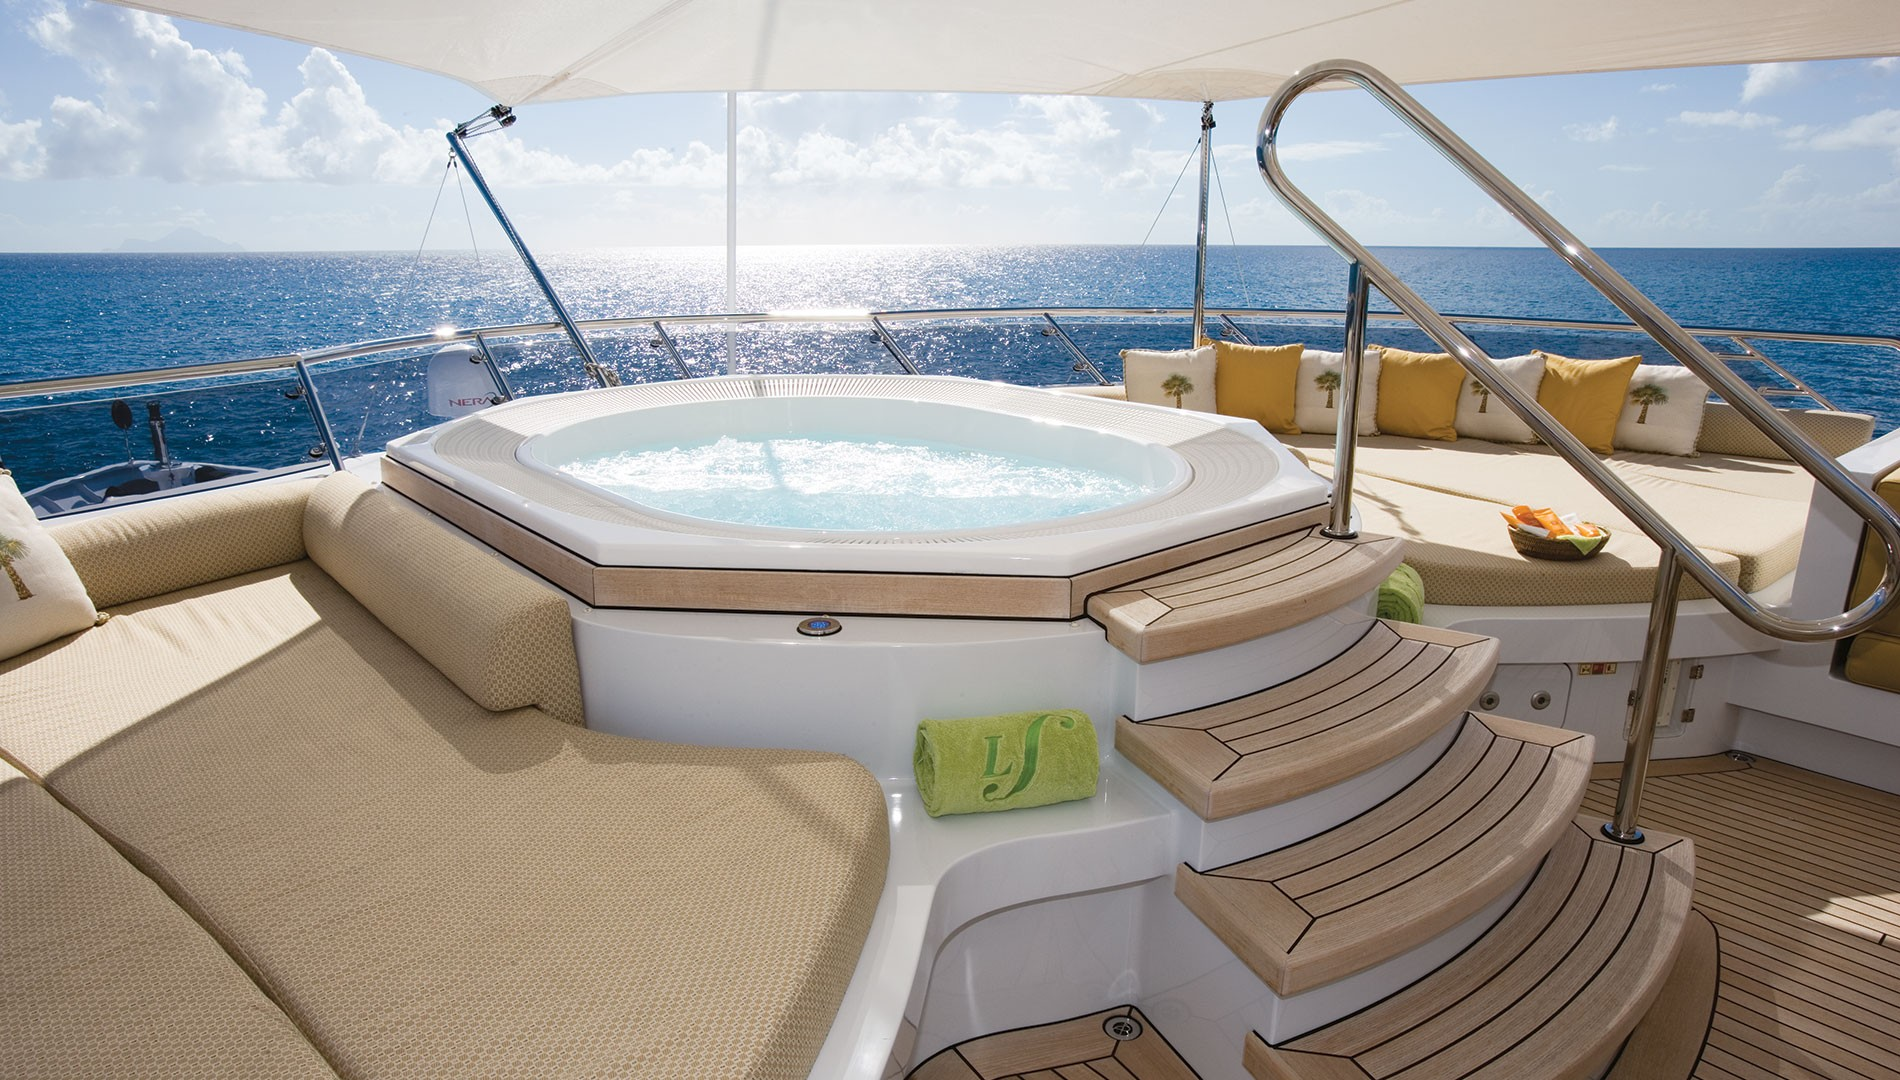 Jacuzzi On Board With Comfortable Sunpads Around